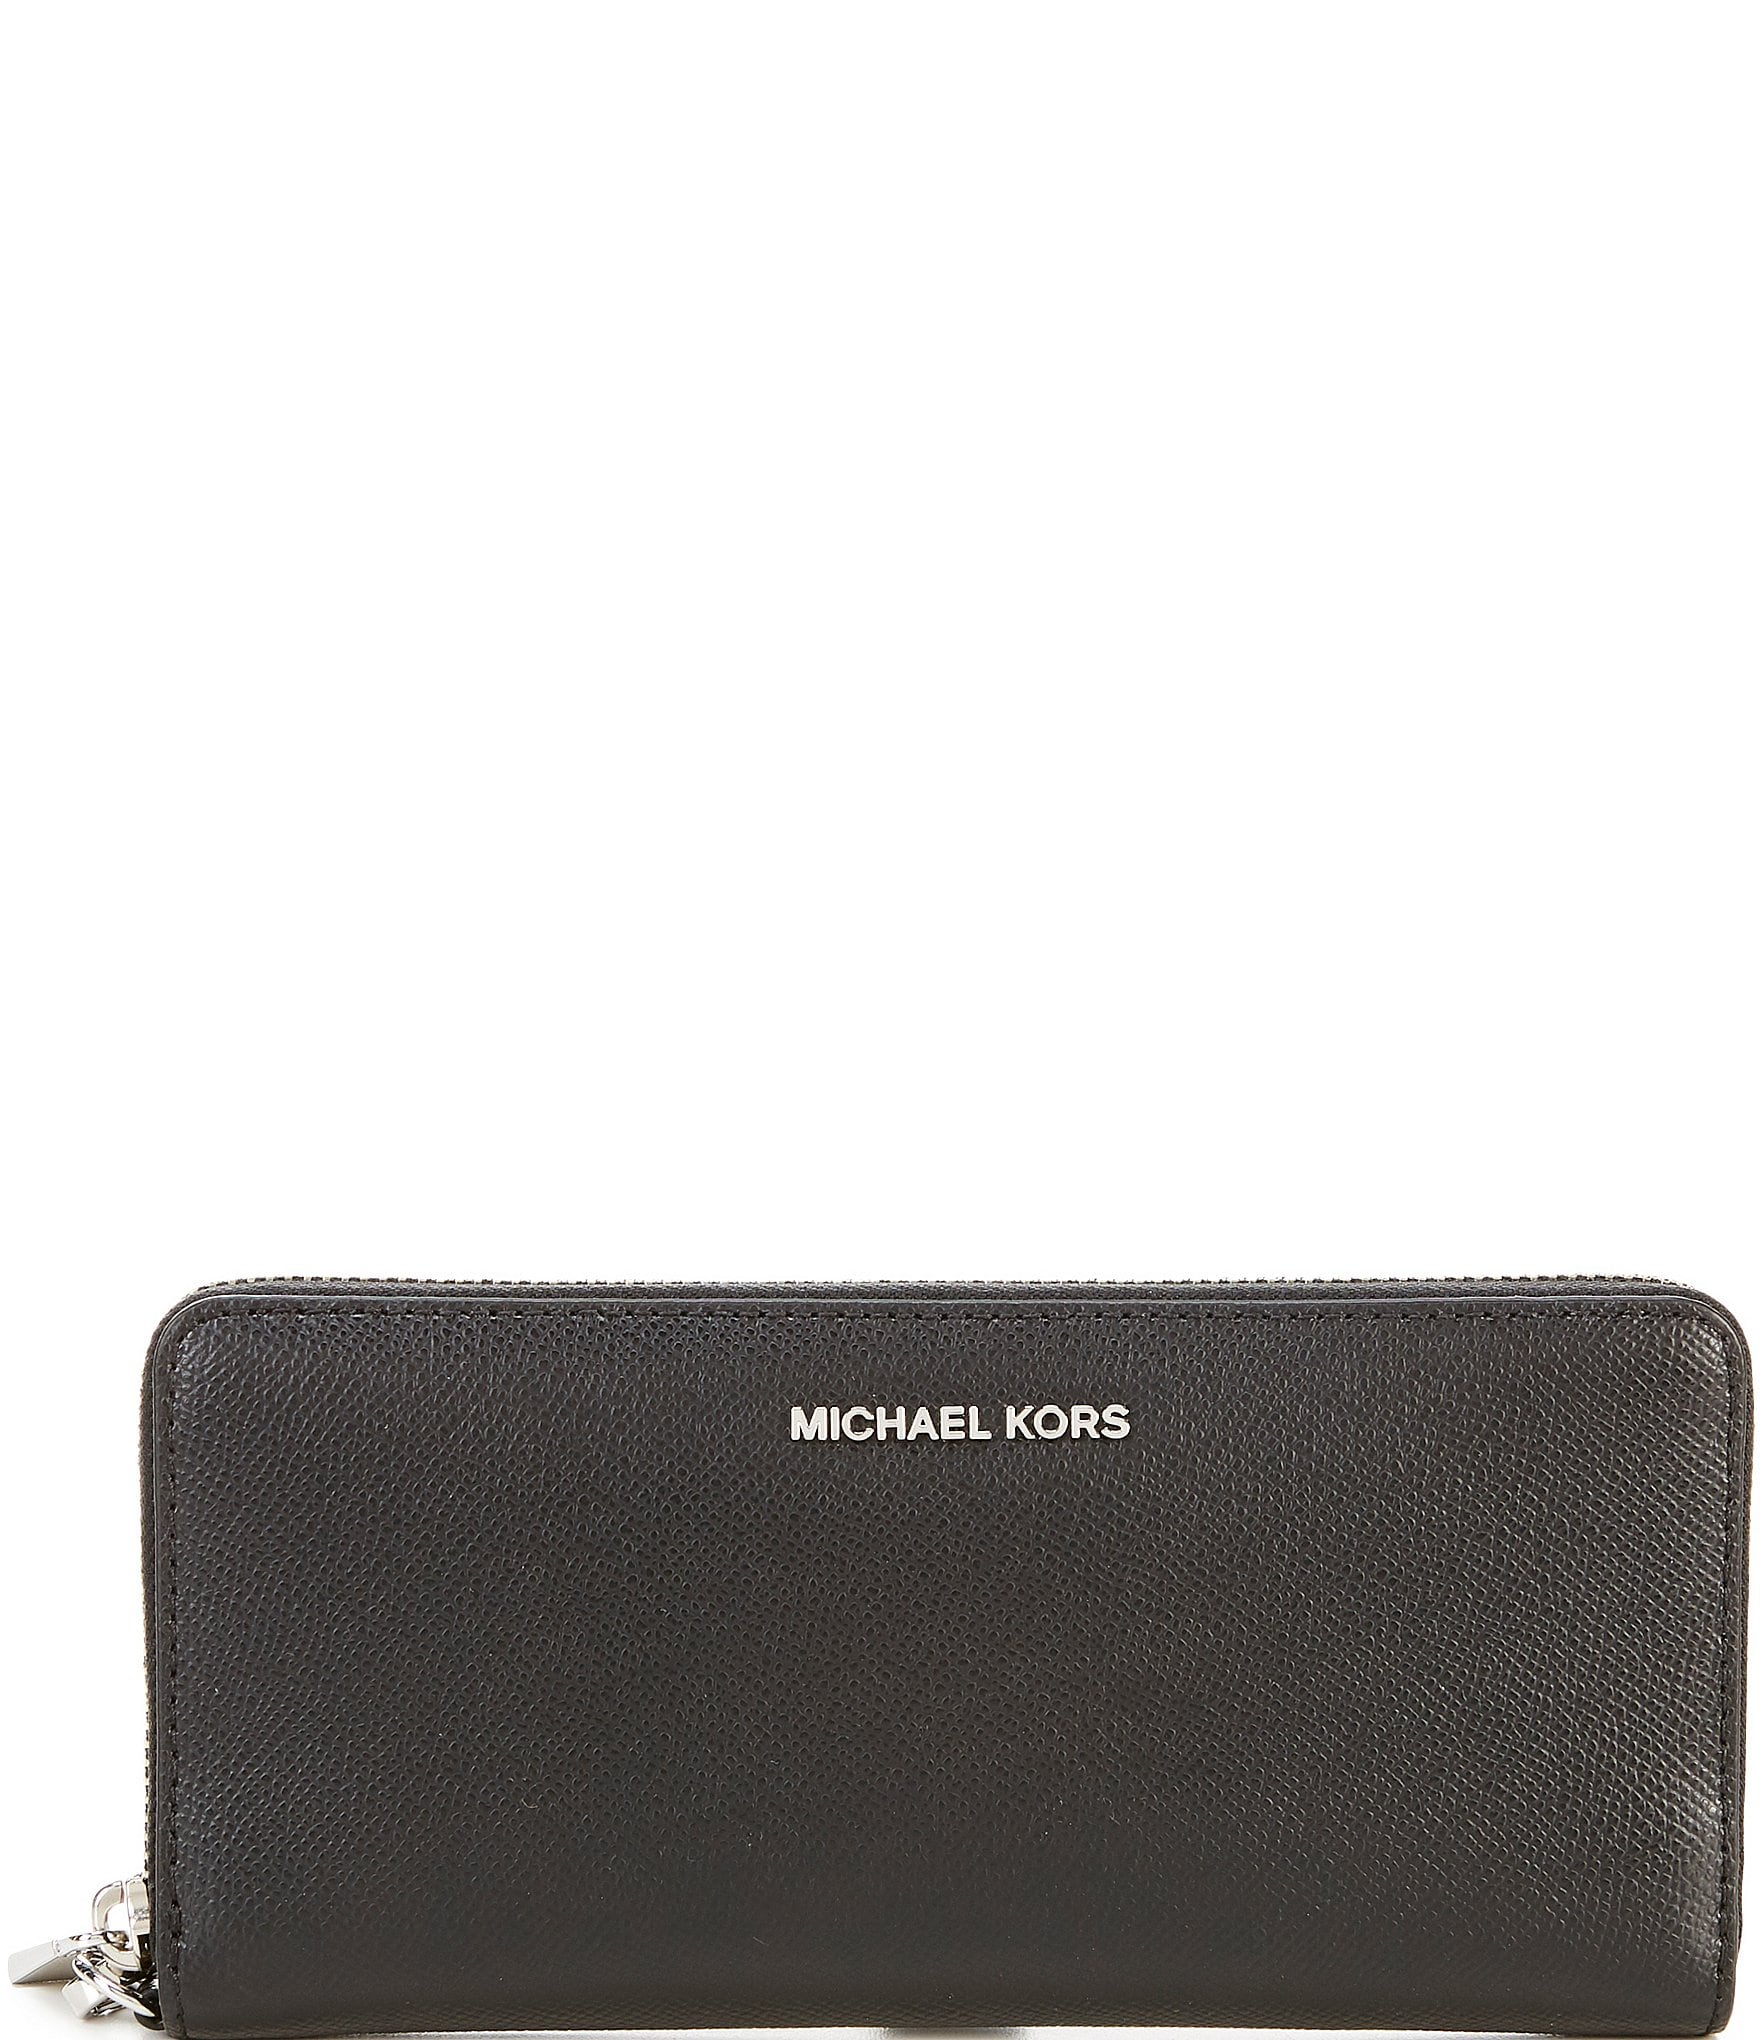 2eb64b11b5701 MICHAEL Michael Kors Silver-Tone Jet Set Continental Multifunction Phone  Wallet